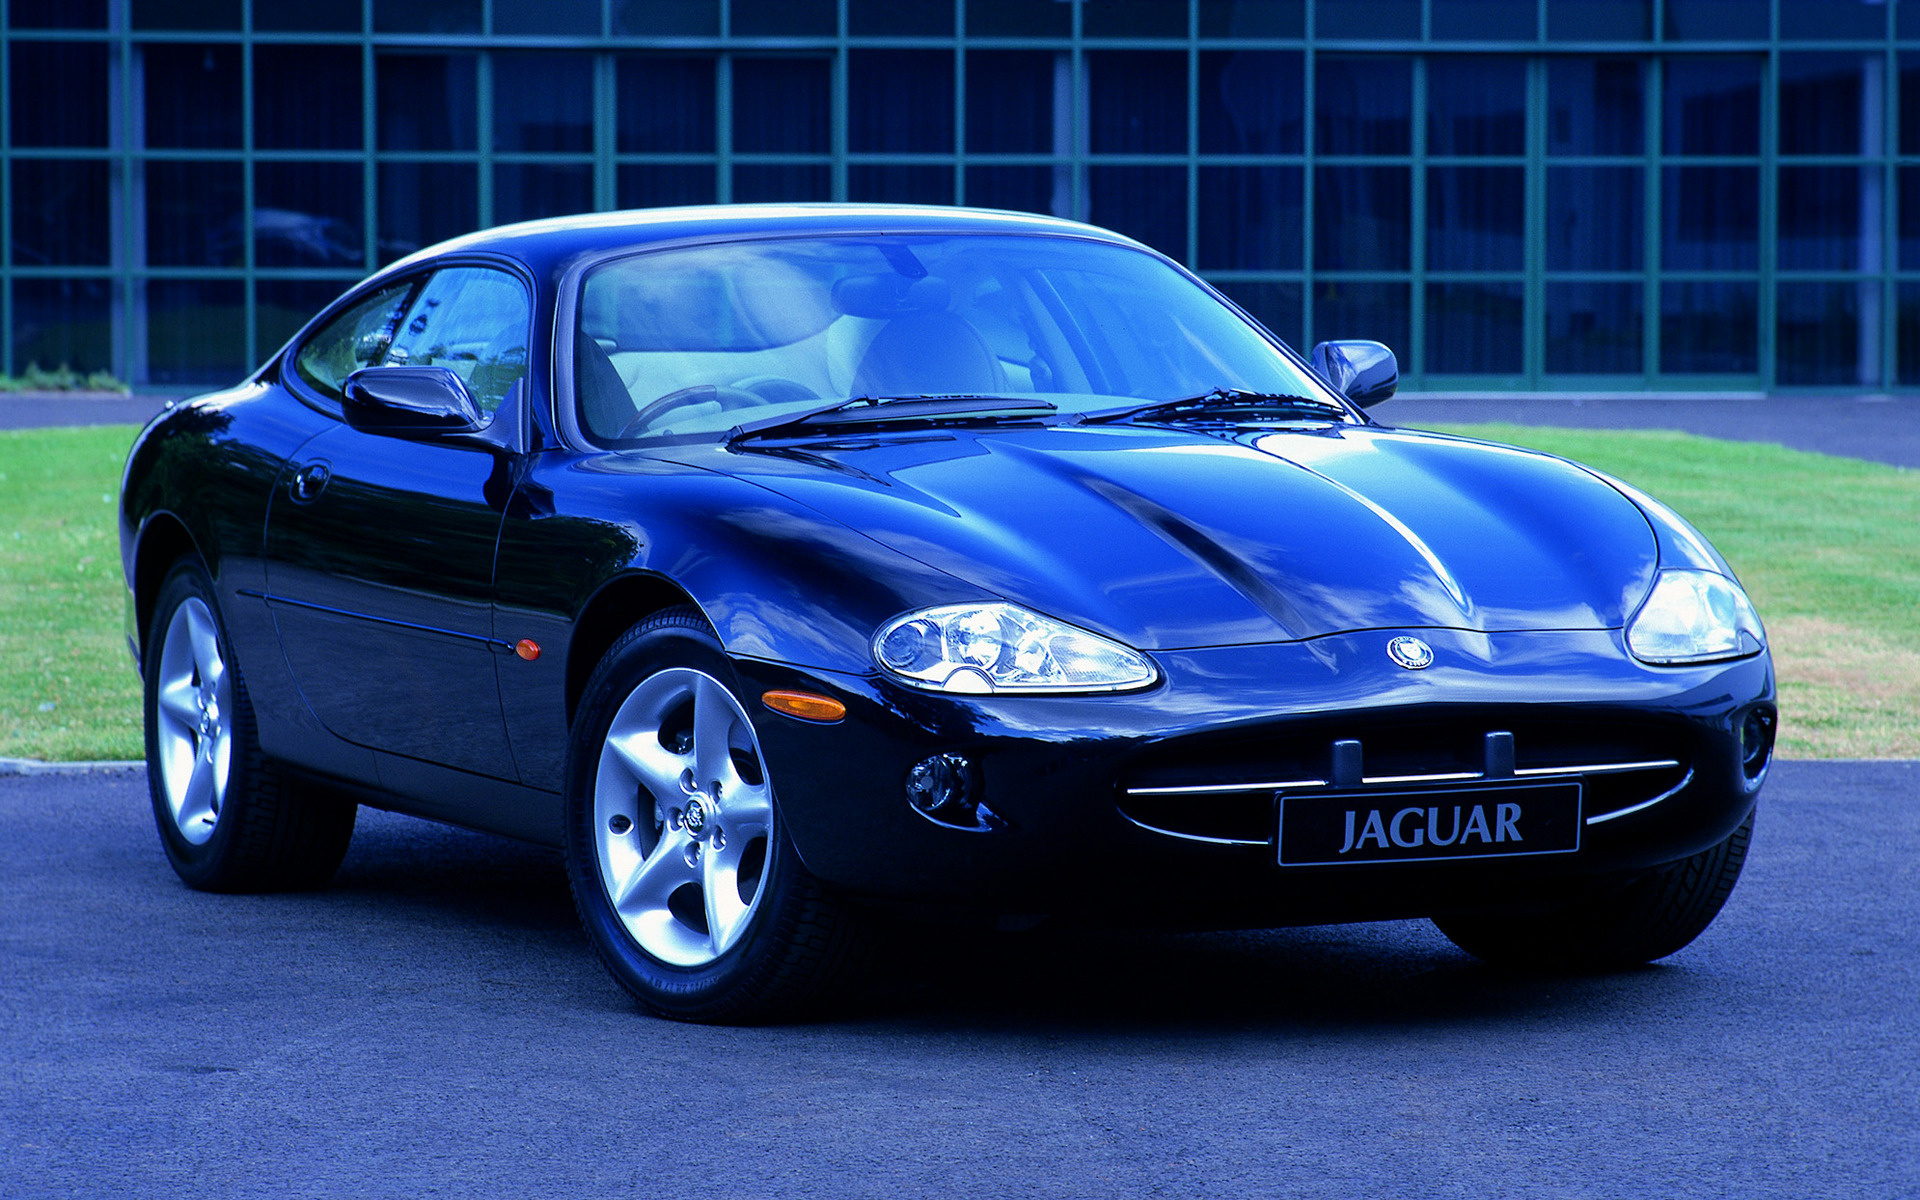 1996 Jaguar XK8 Coupe (UK) - Wallpapers and HD Images ...